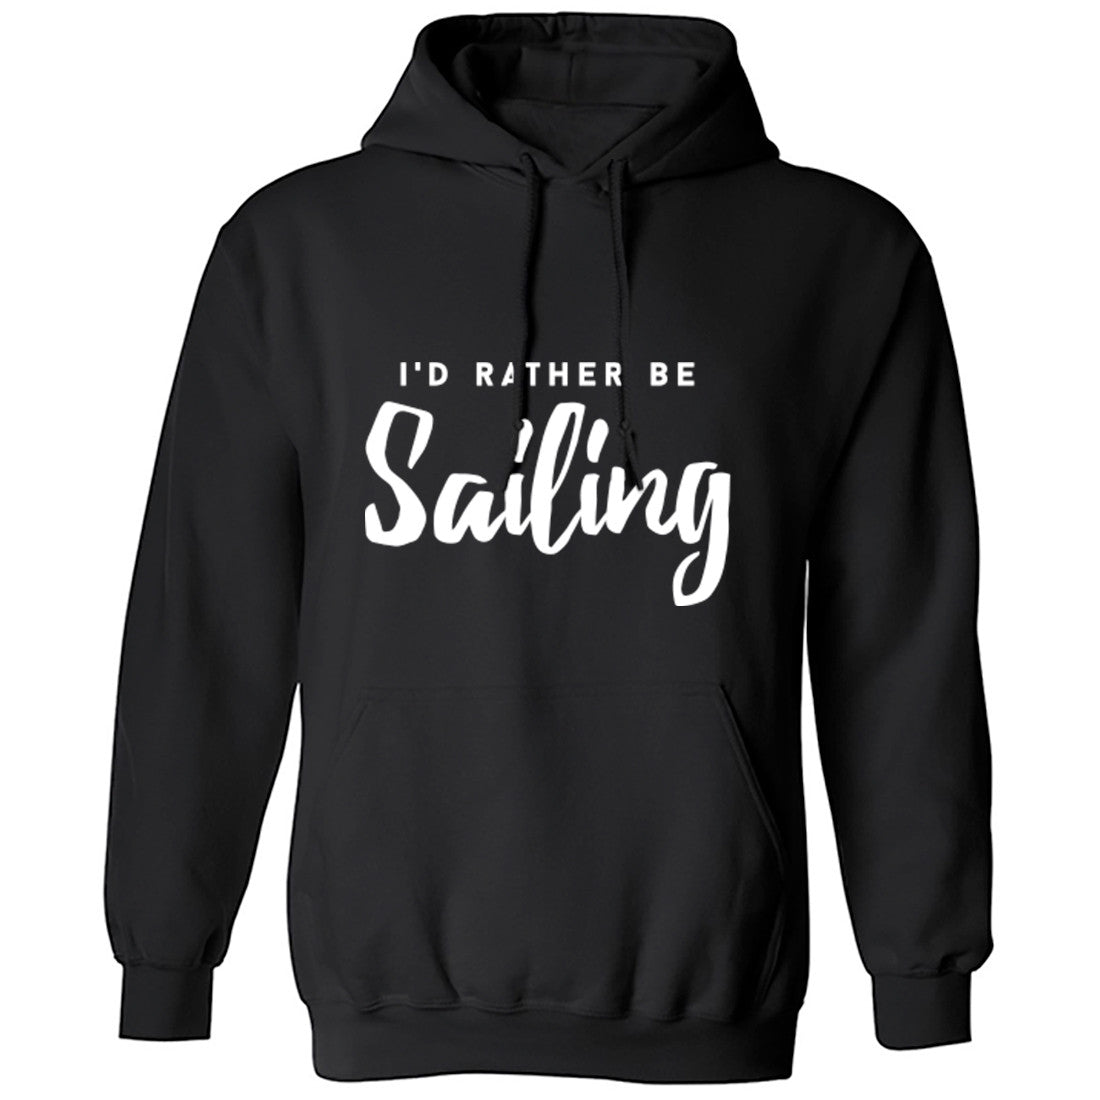 I'd Rather Be Sailing Unisex Hoodie K0221 - Illustrated Identity Ltd.